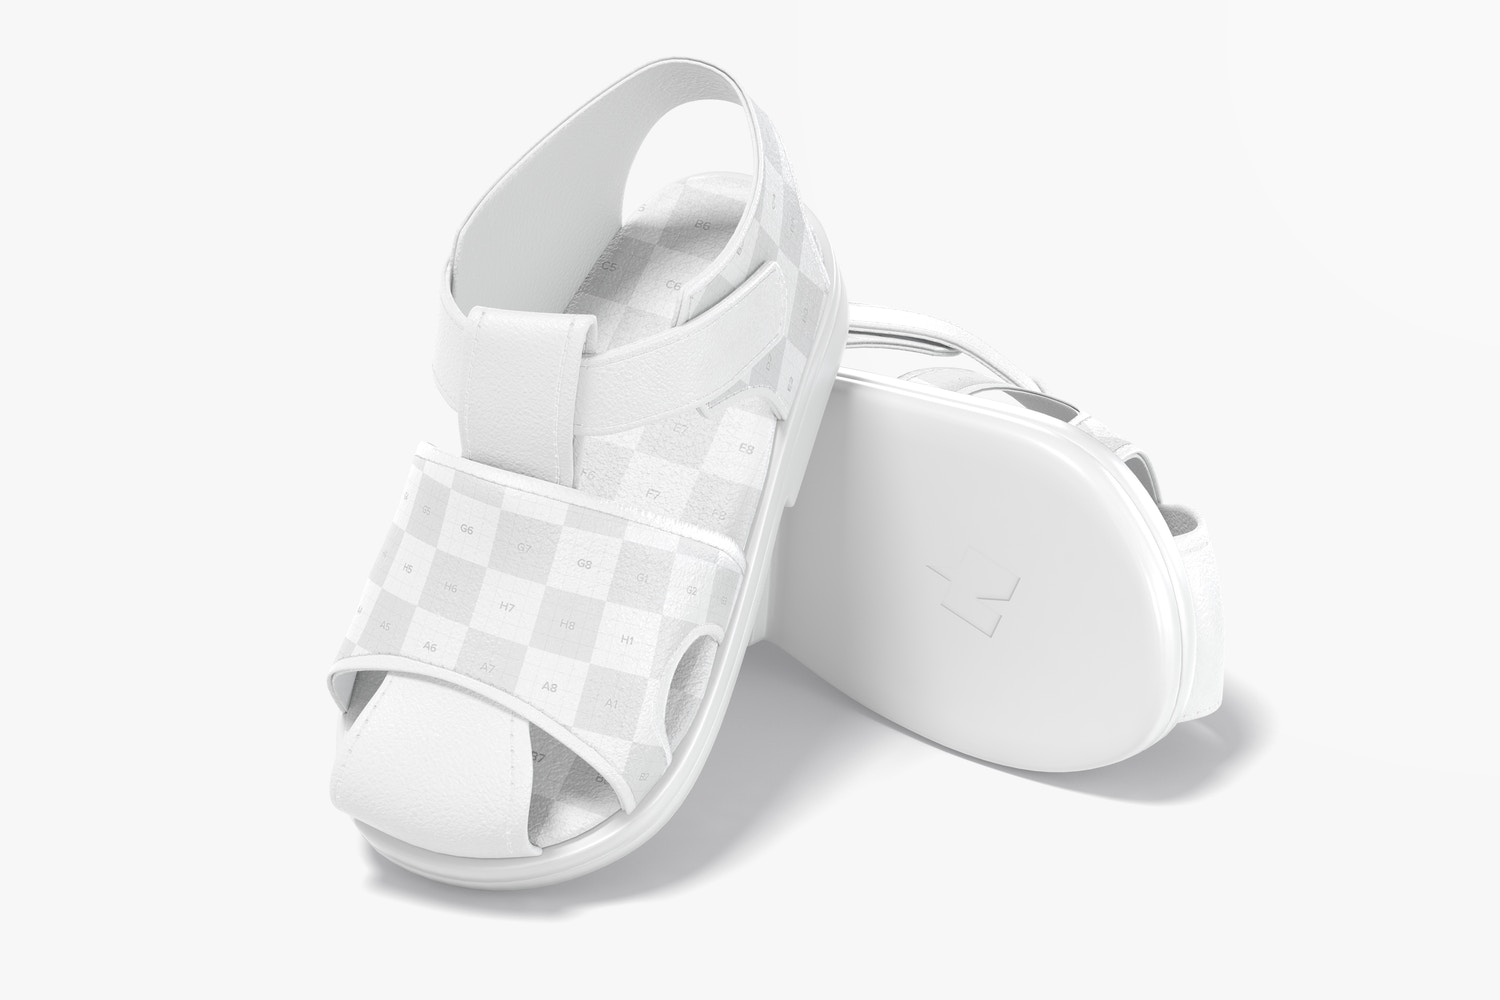 Baby Shoes Mockup, Leaned